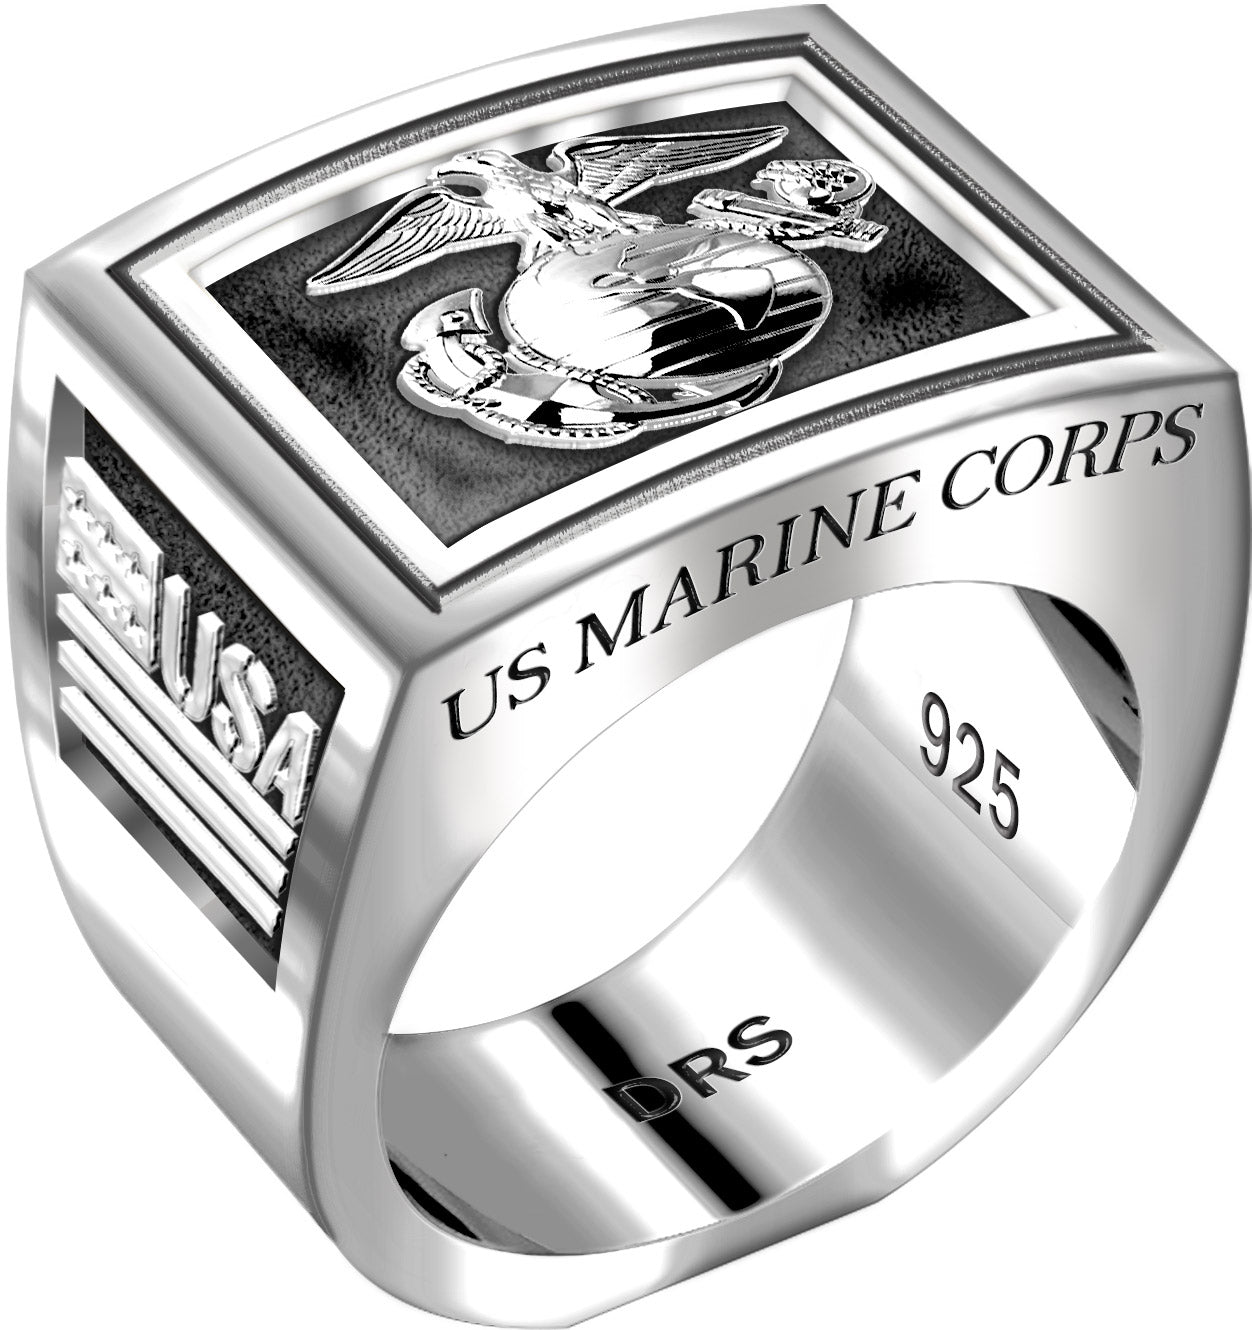 Men's Heavy 0.925 Sterling Silver US Marine Corps USMC Ring Band